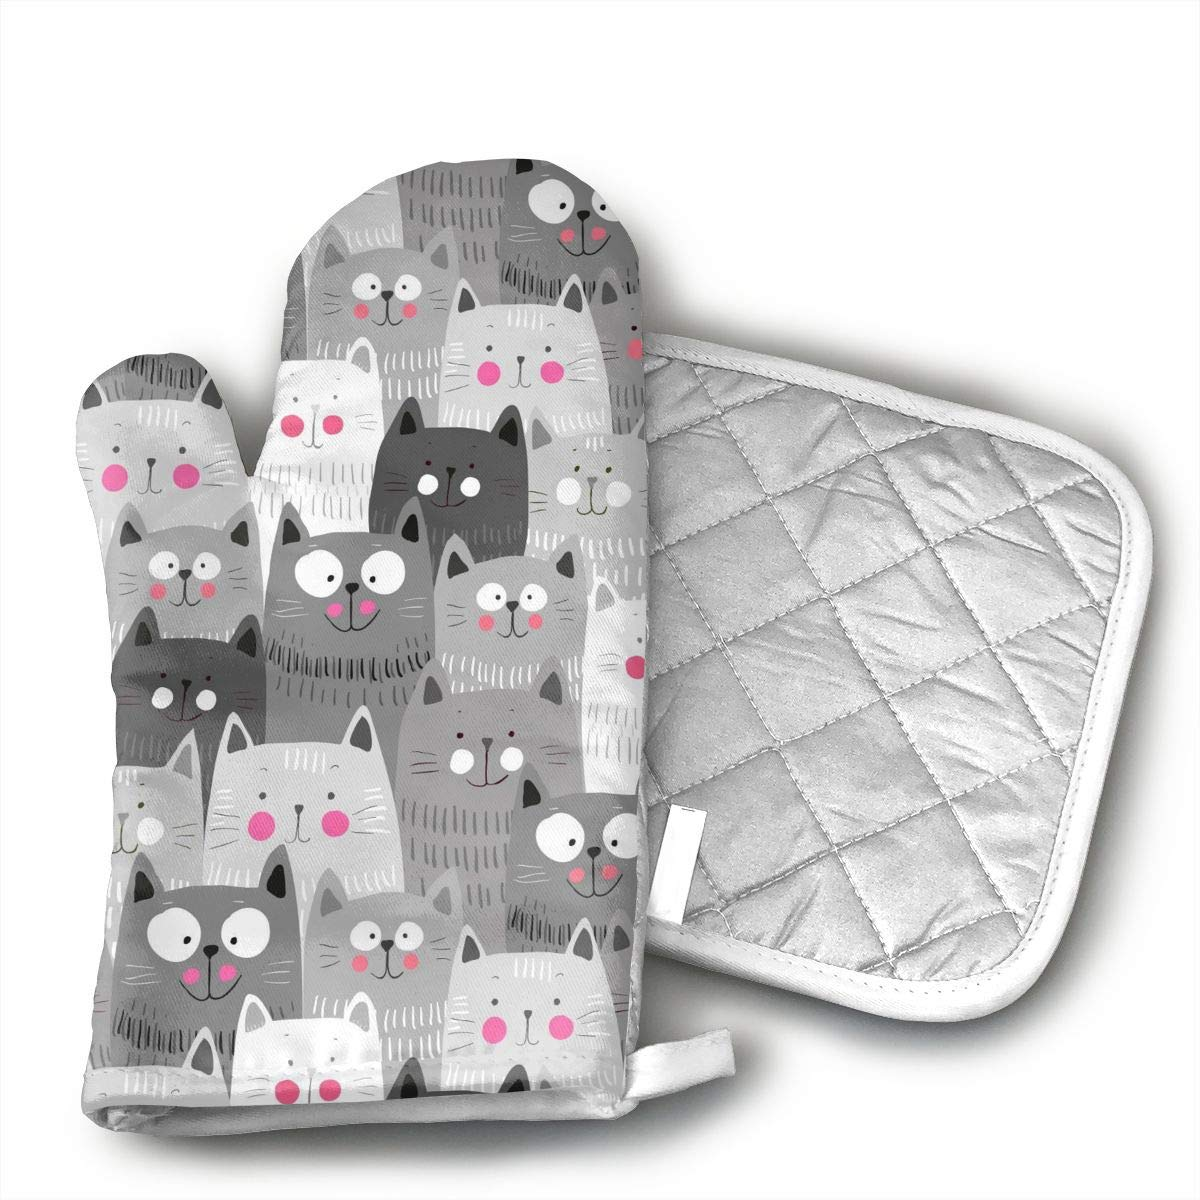 Cute Cats Oven Mitts Kitchen Gloves and Pot Holders 2pcs for Kitchen Set with Cotton Neoprene Silicone Non-Slip Grip,Heat Resistant,Oven Gloves for BBQ Cooking Baking Grilling